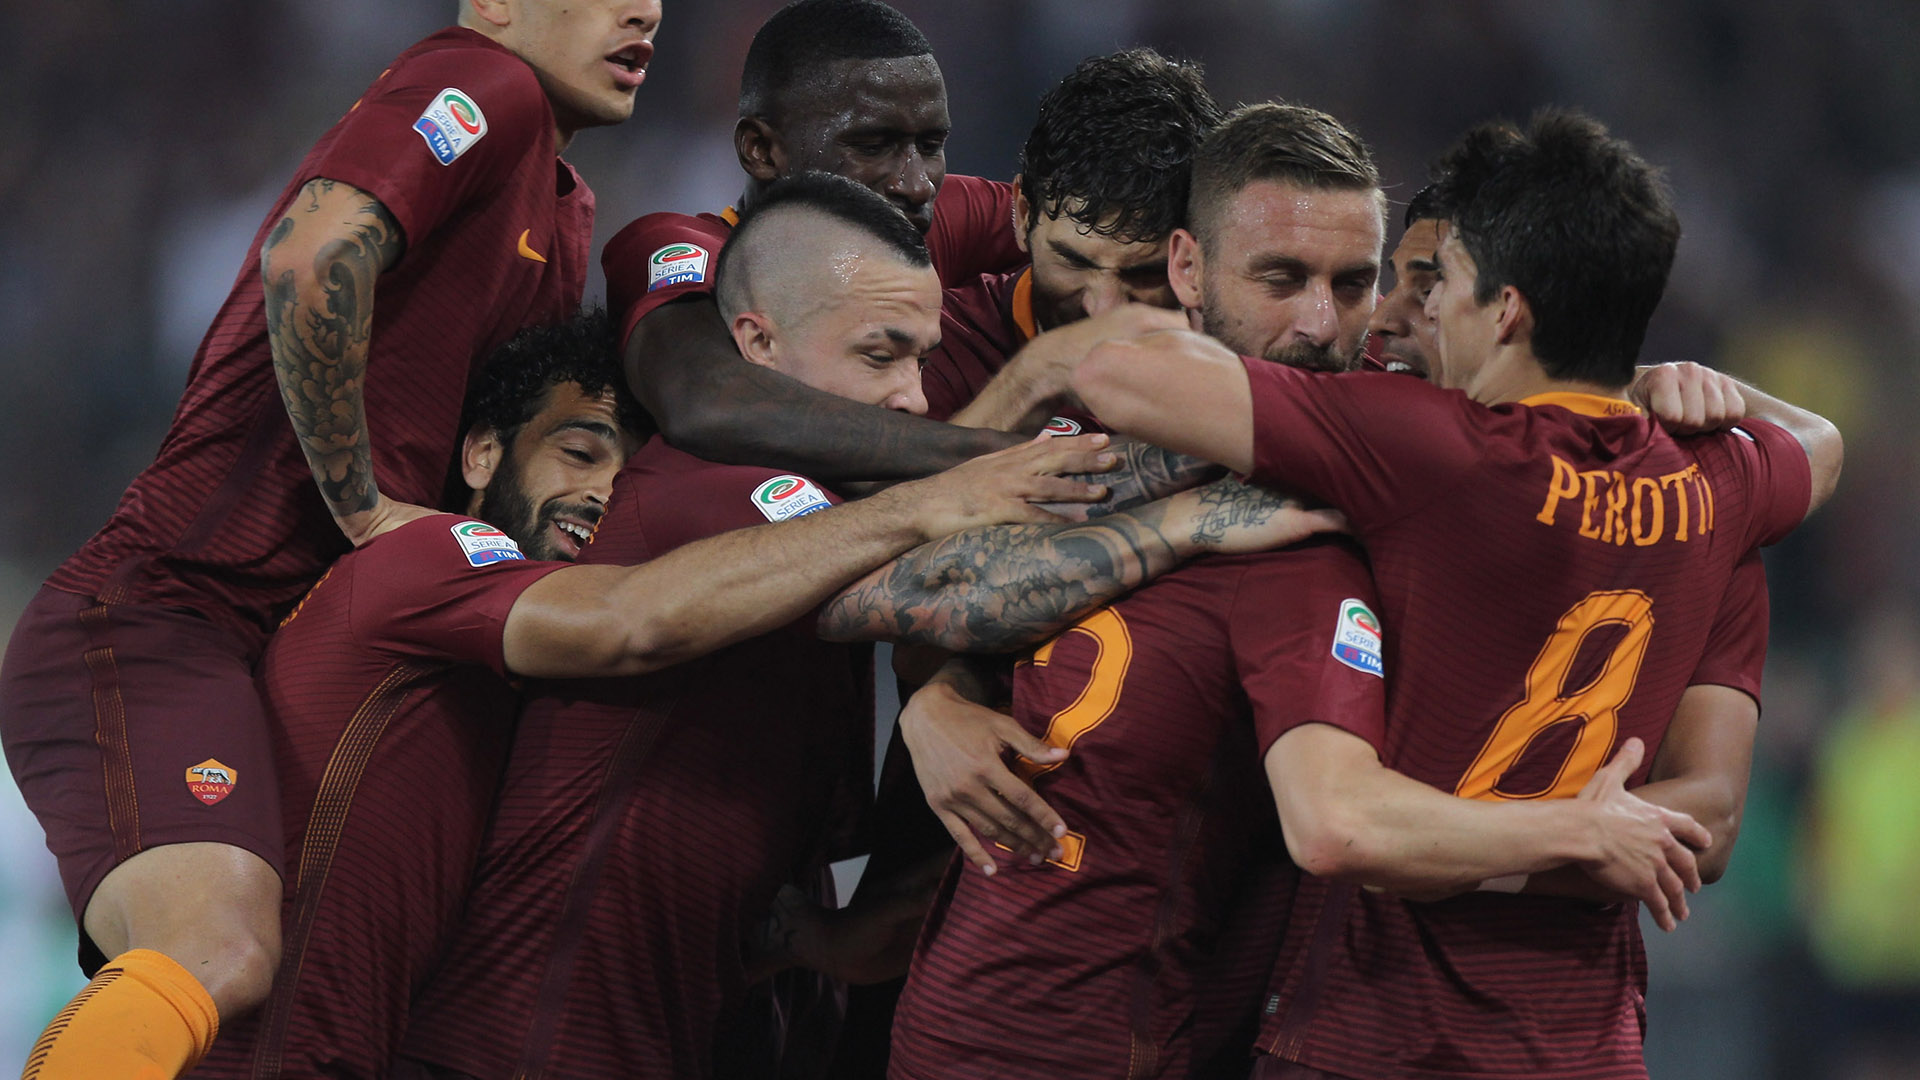 Roma beats Chievo 5-3 to move 1 point behind Juventus